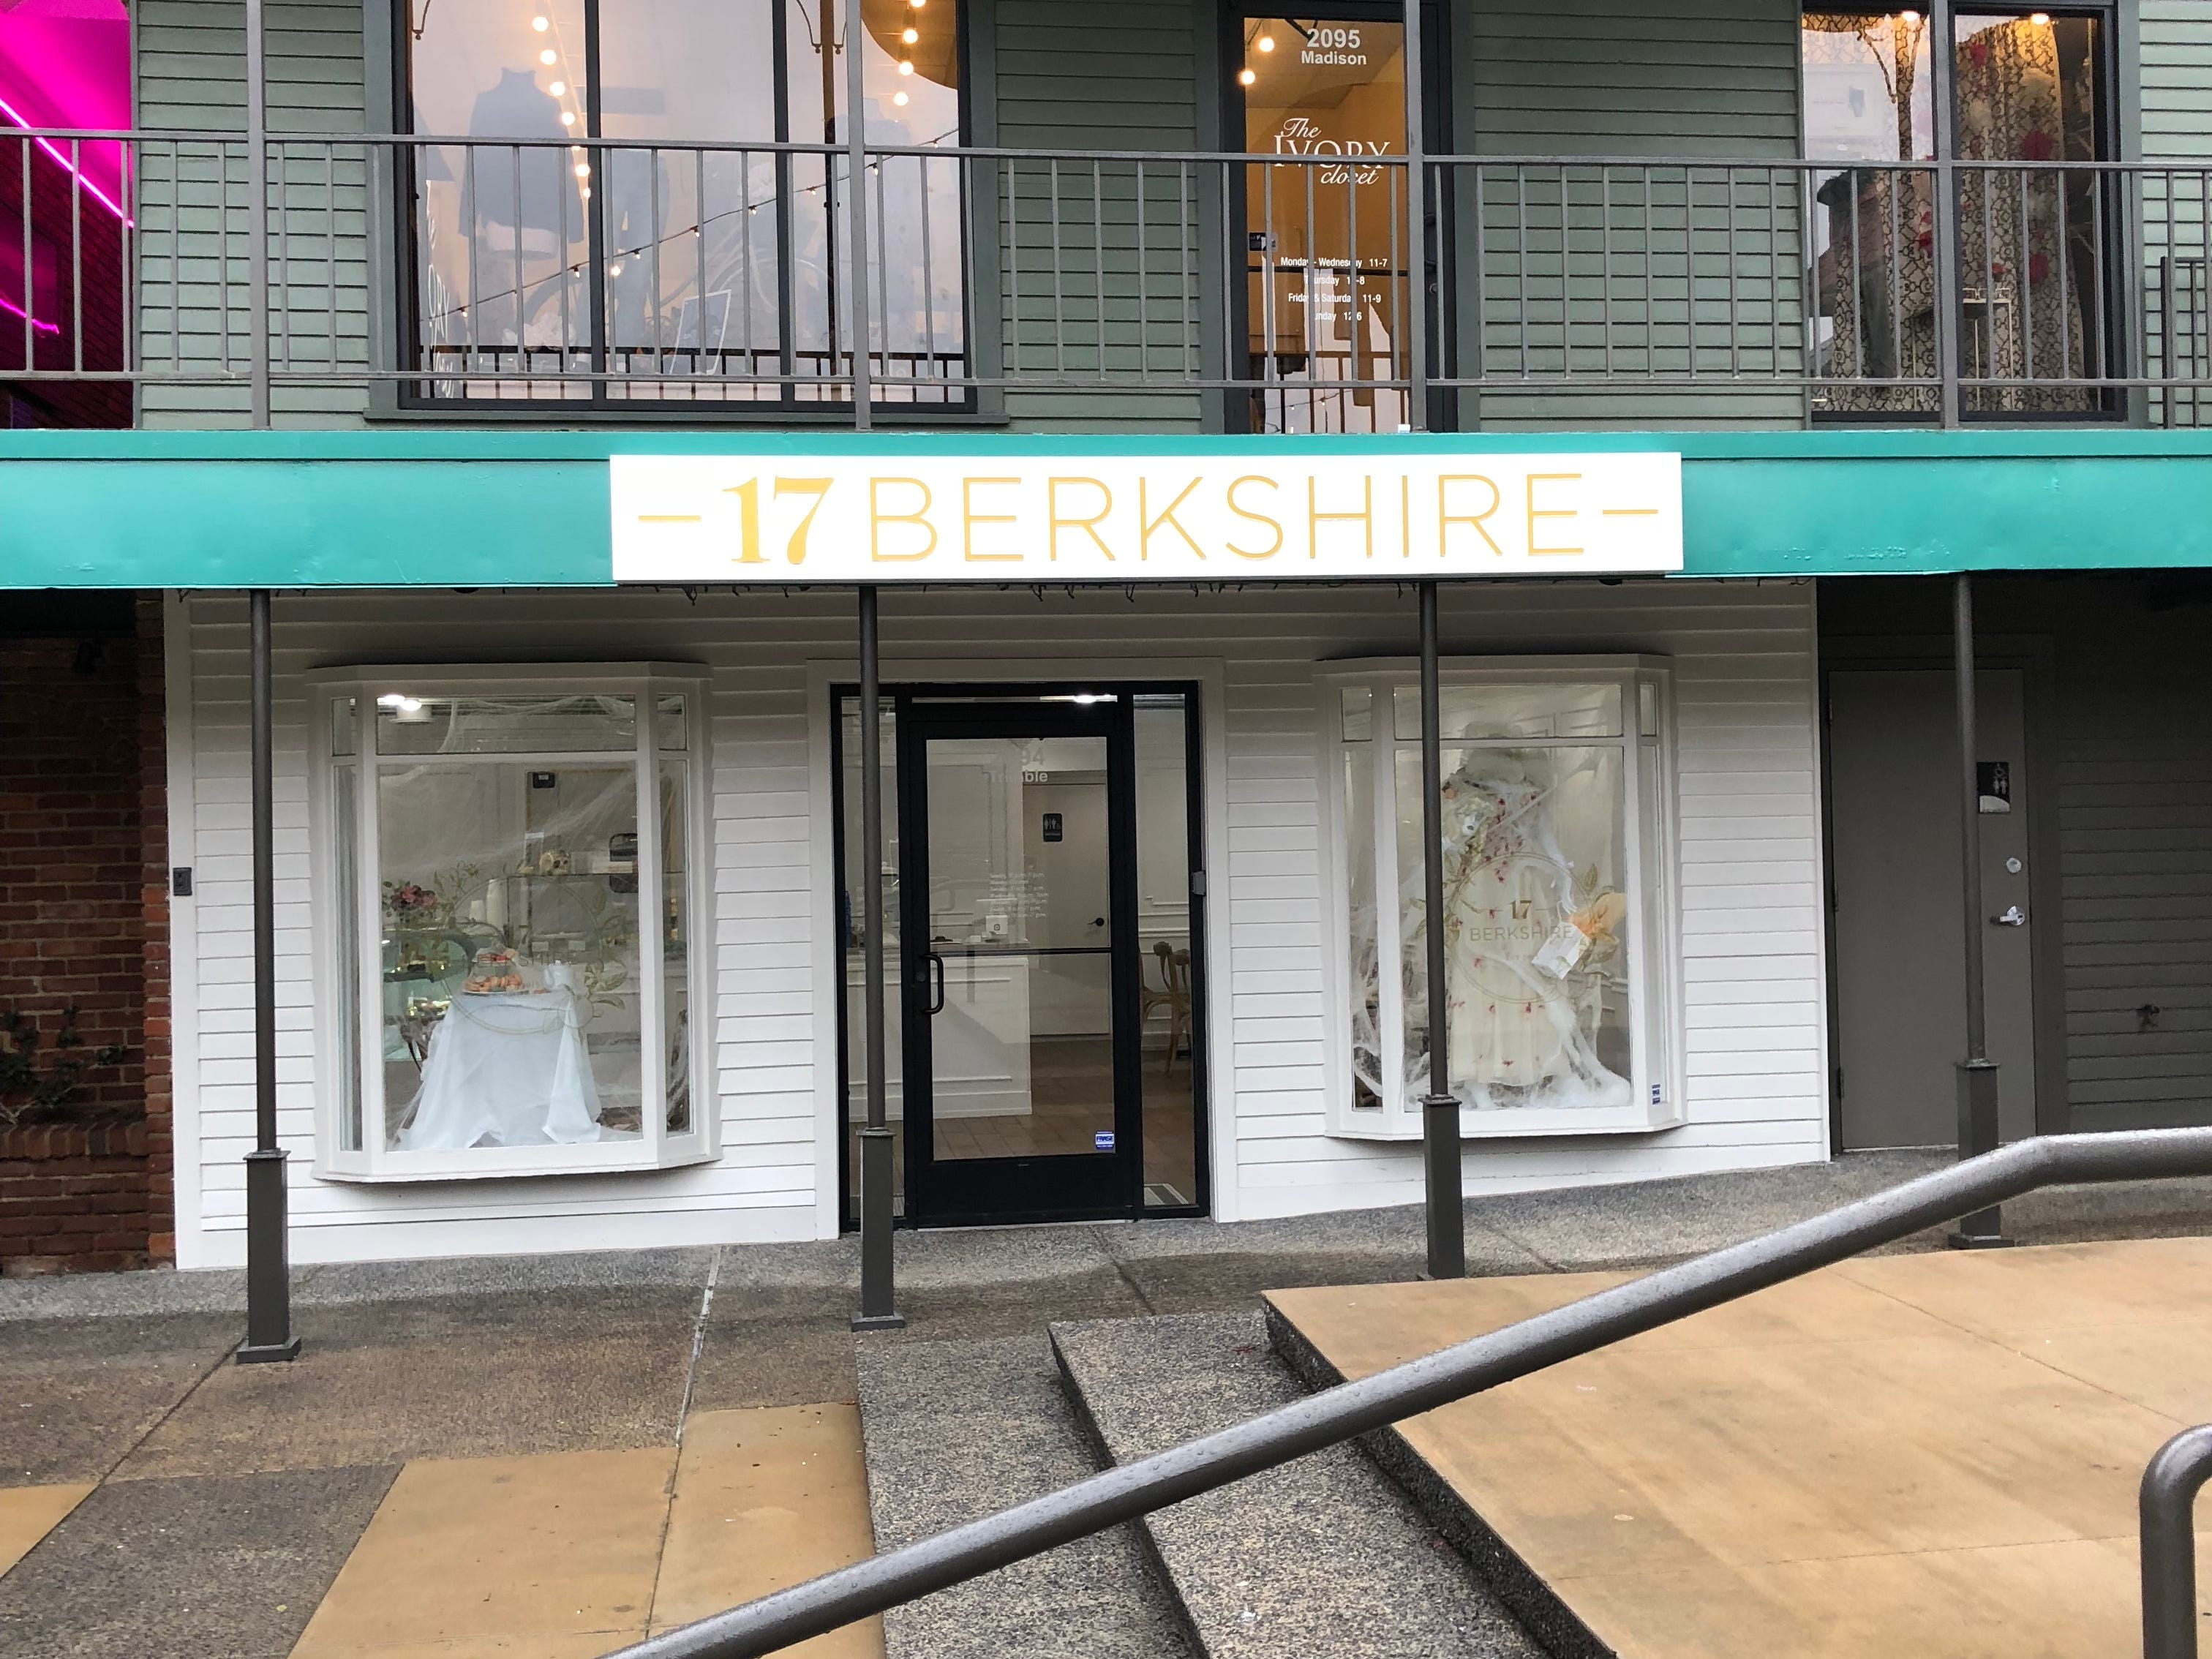 17 Berkshire is located on the back side of Overton Square.